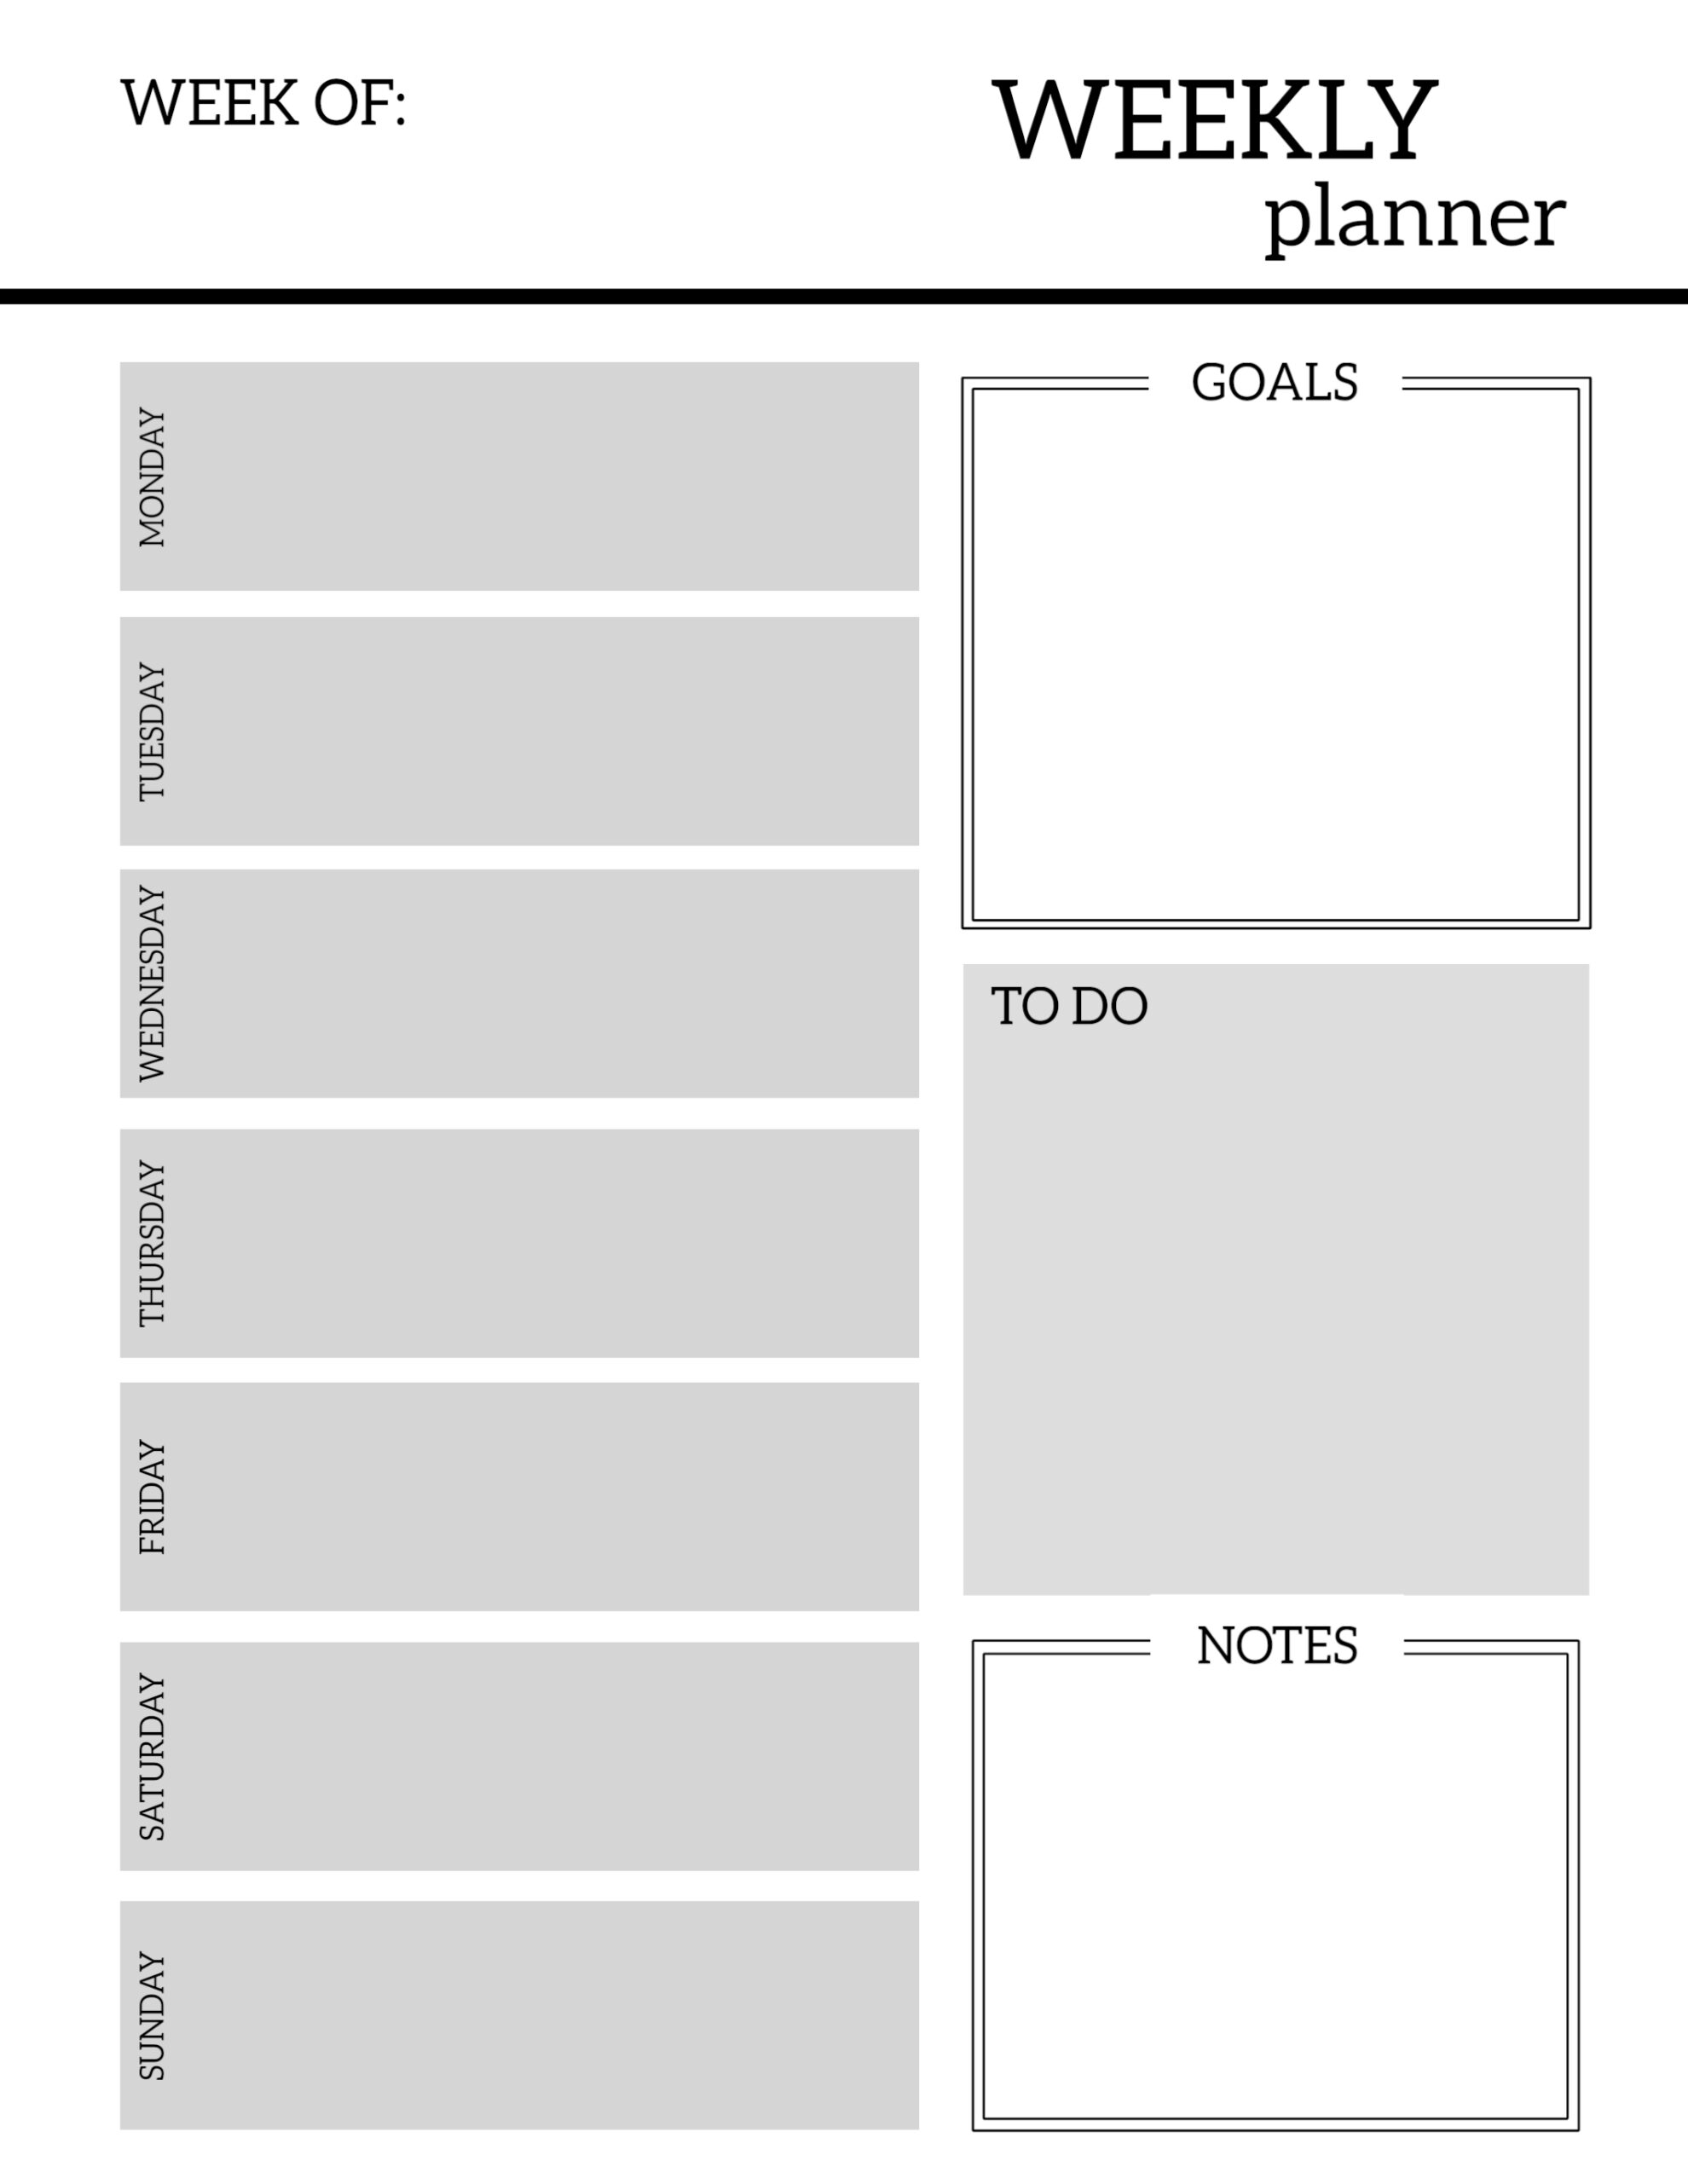 photograph regarding Free Weekly Planner Printable known as Cost-free Printable Weekly Planner Webpages - Paper Path Structure